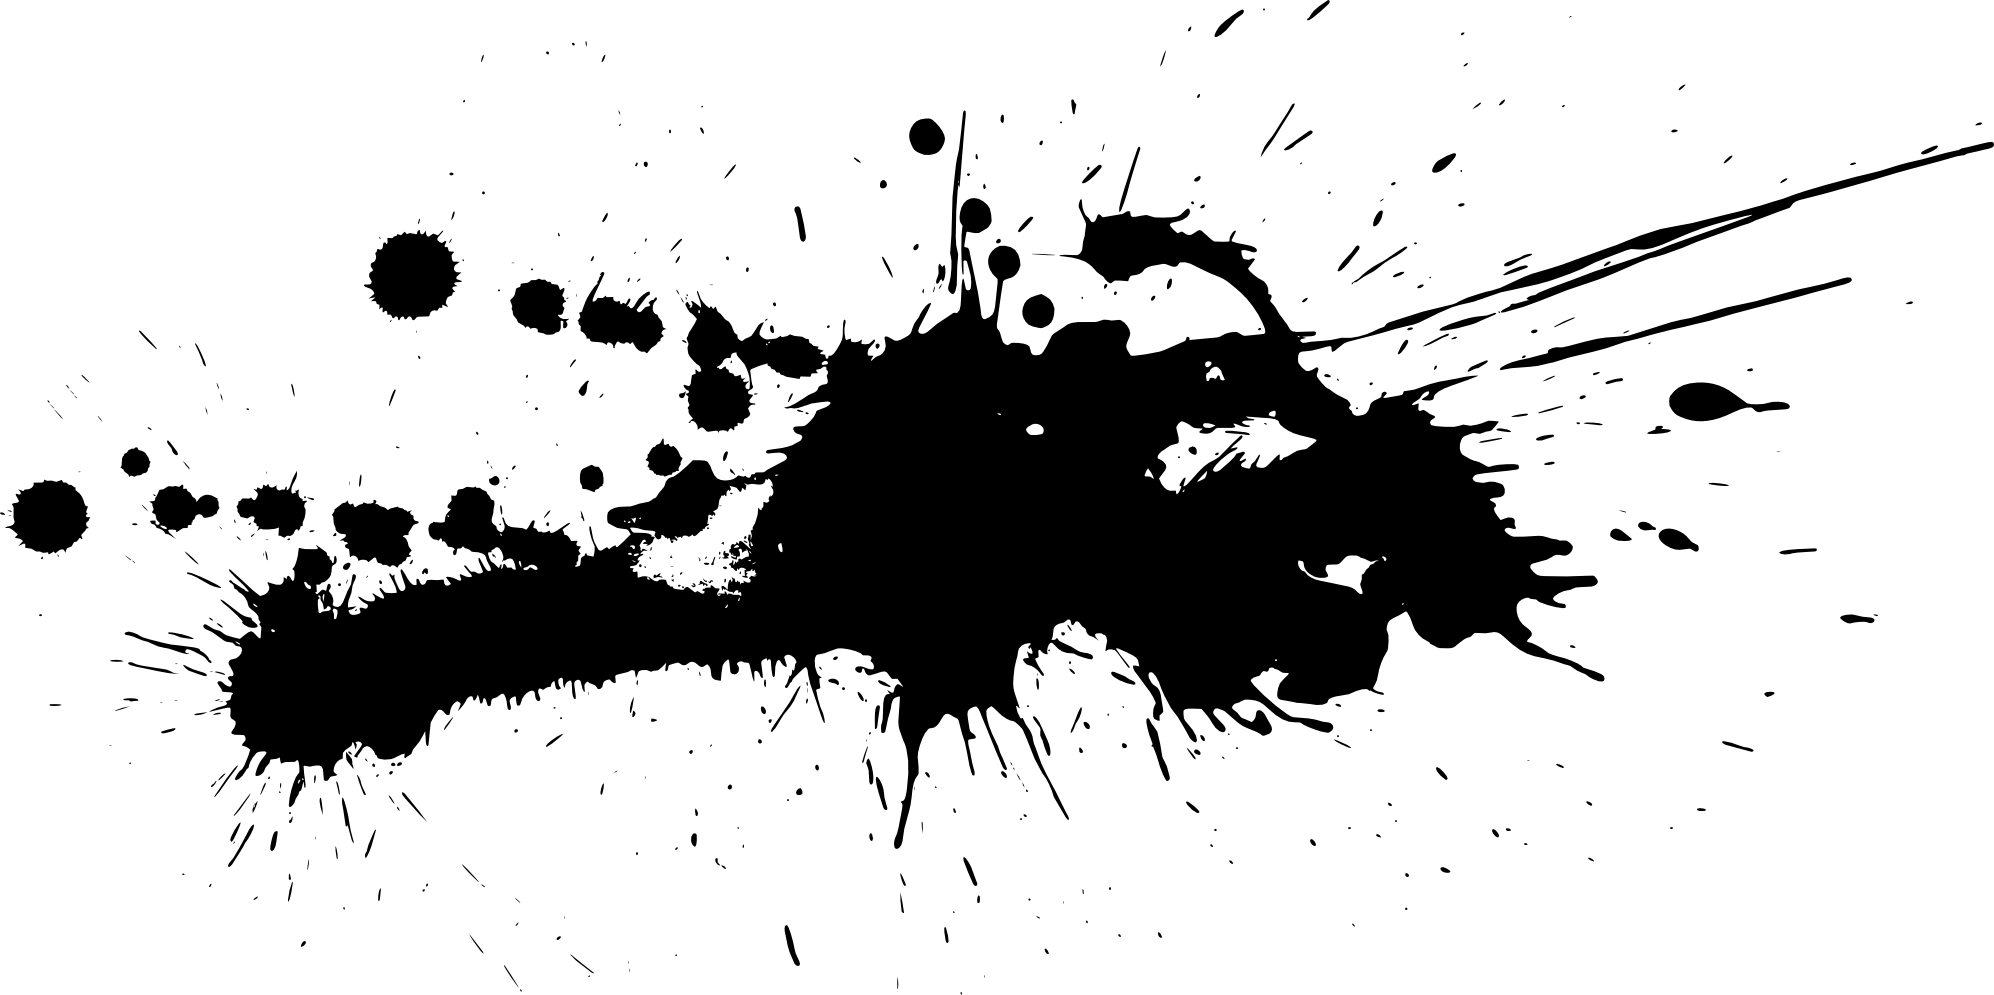 how to draw paint splatter